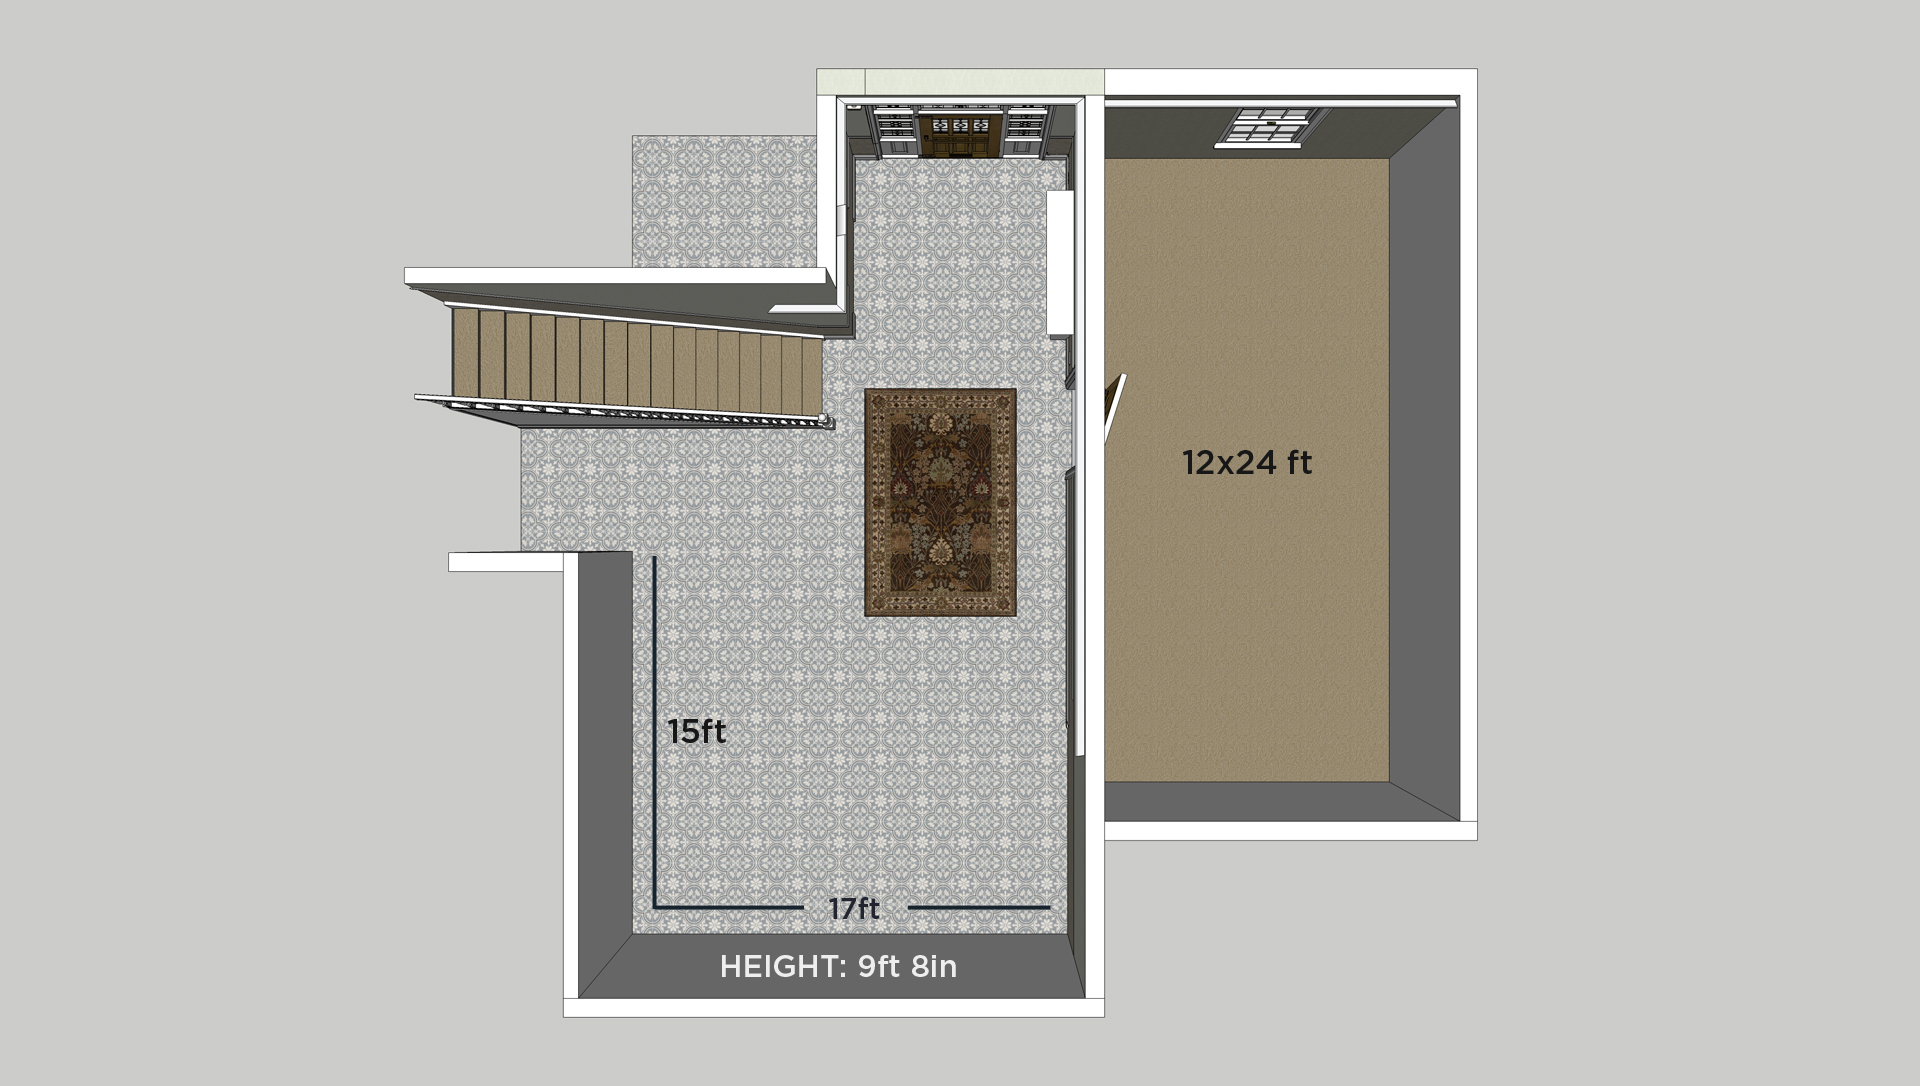 SketchUp model scale and layout